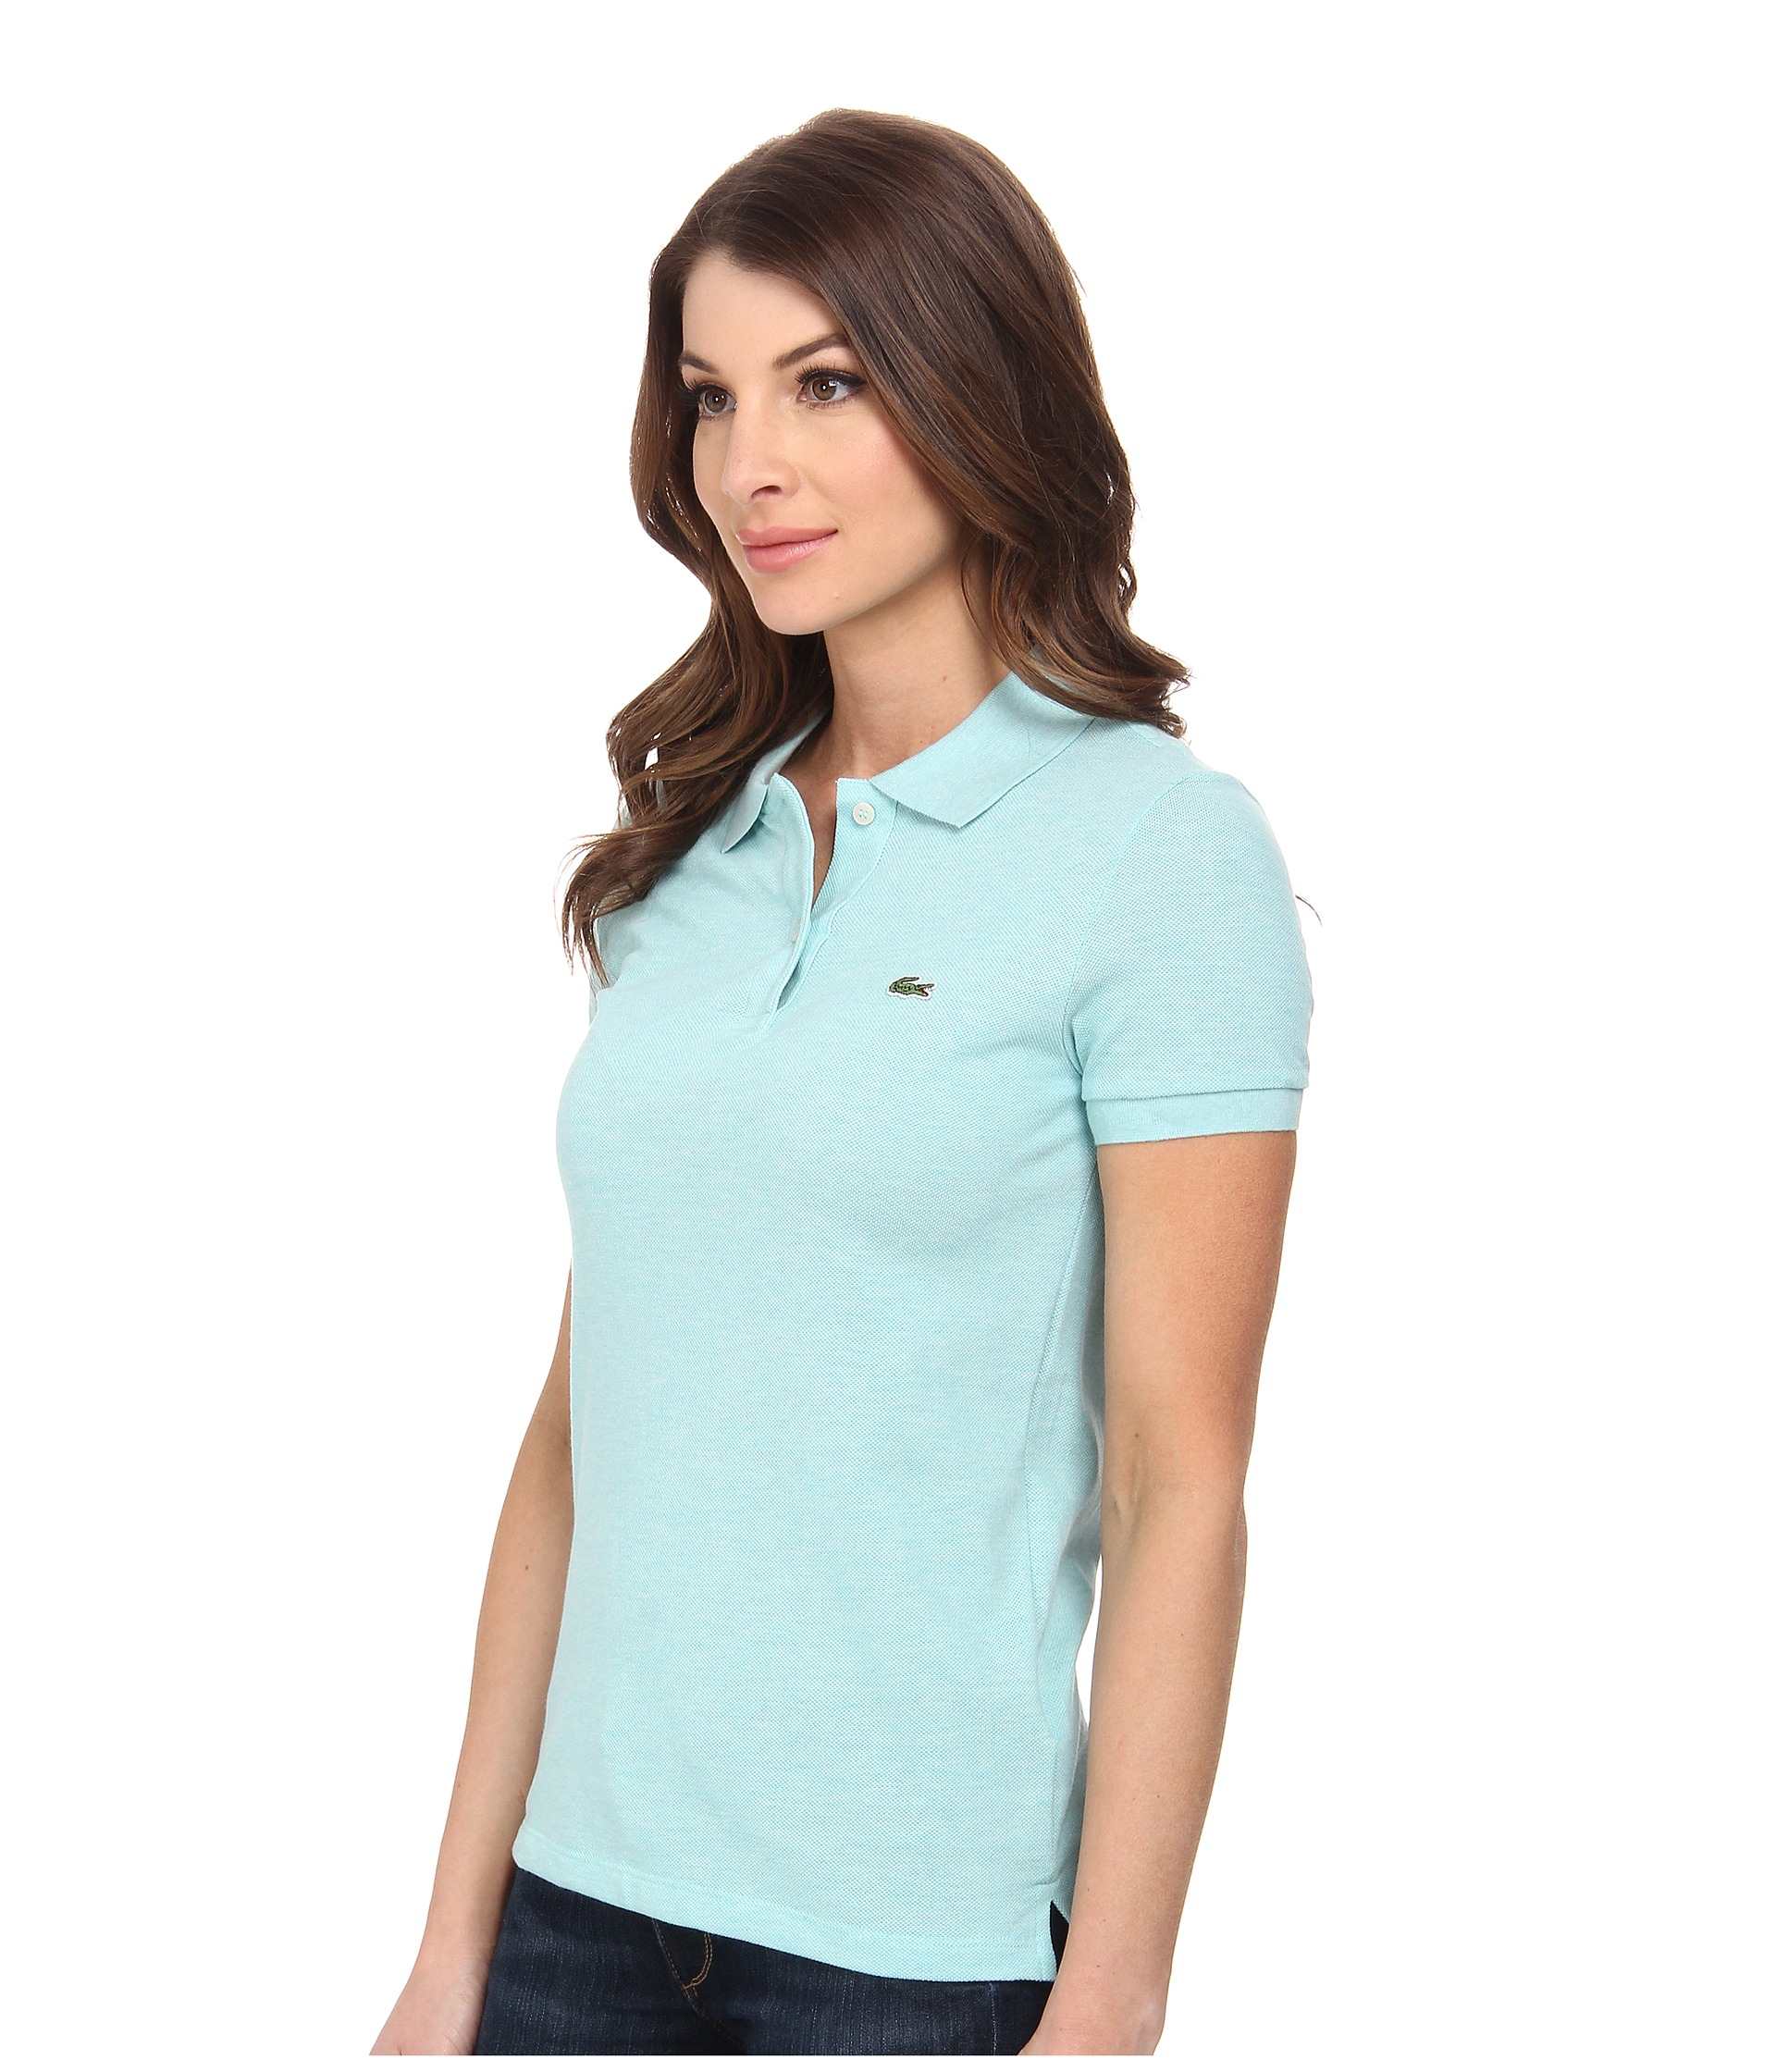 de6006c3 Polo Shirt Bibloo.com Lacoste Polo Women: Lacoste Short Sleeve Classic Fit  Pique Polo Shirt